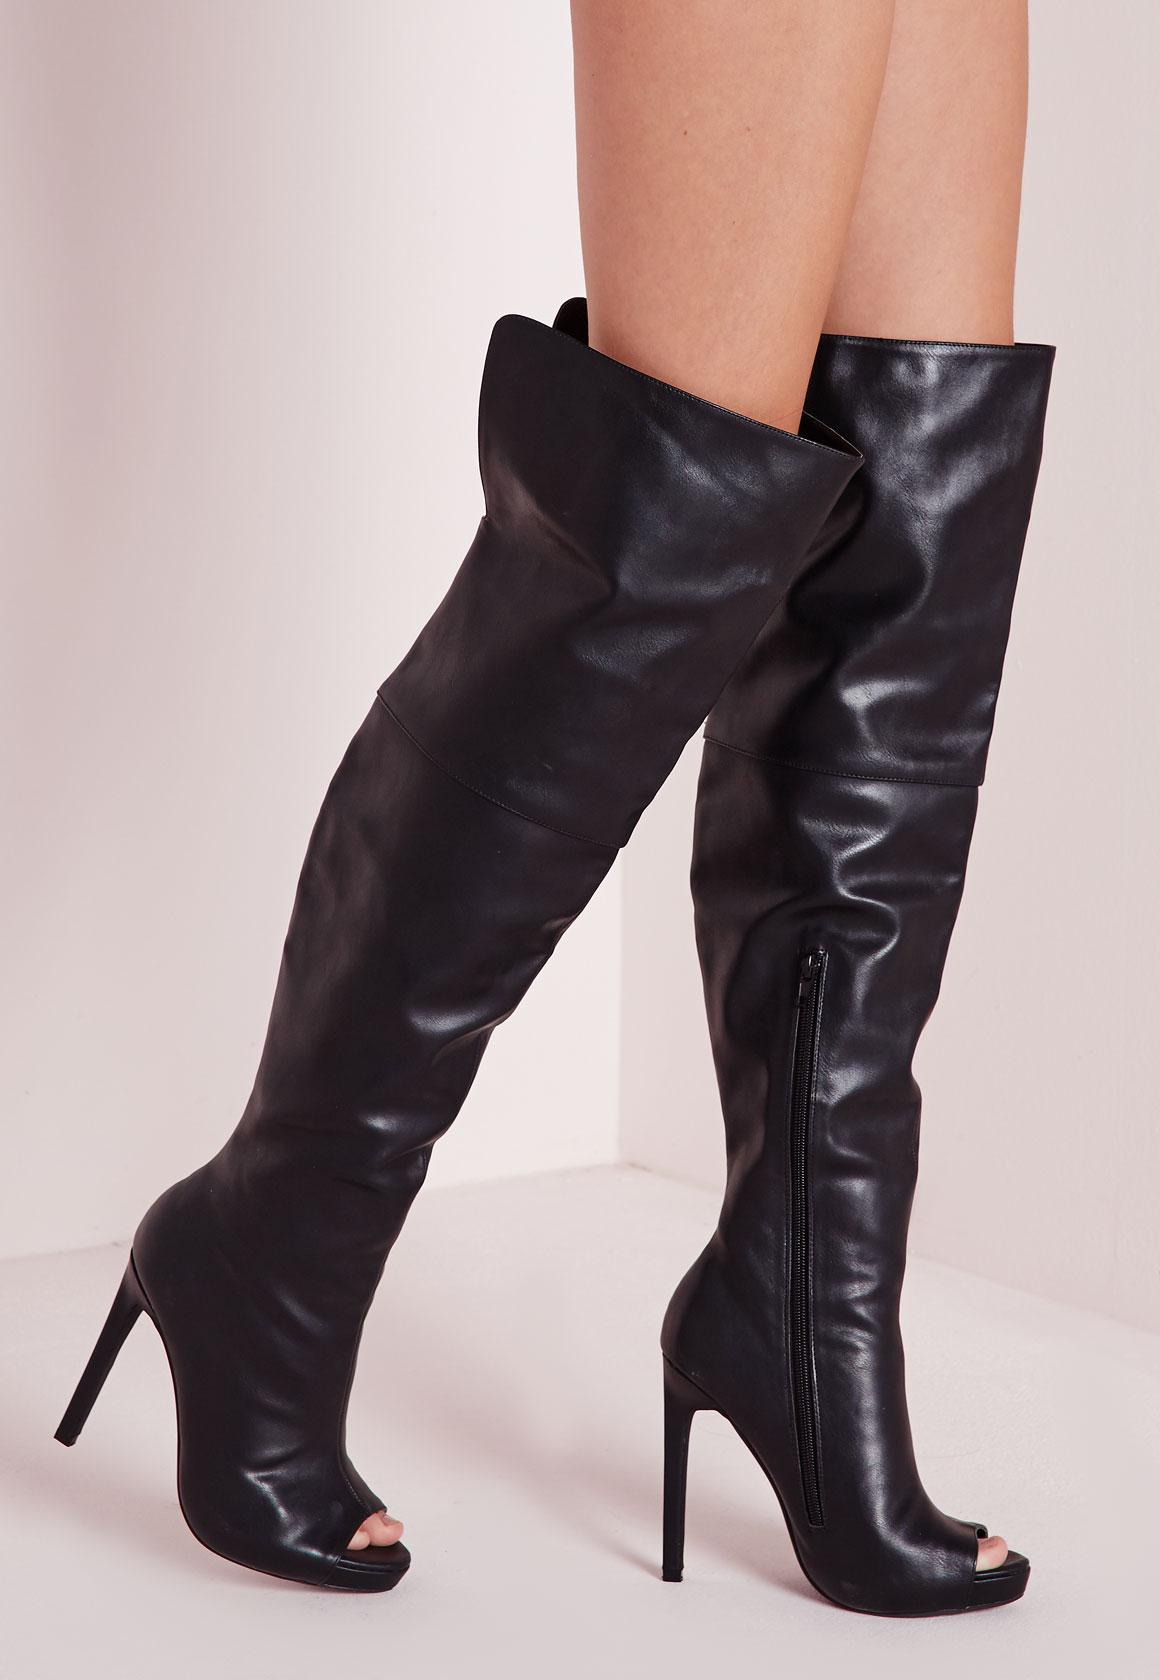 Faux Leather Thigh High Peep Toe Boots Black - Shoes - Boots ...